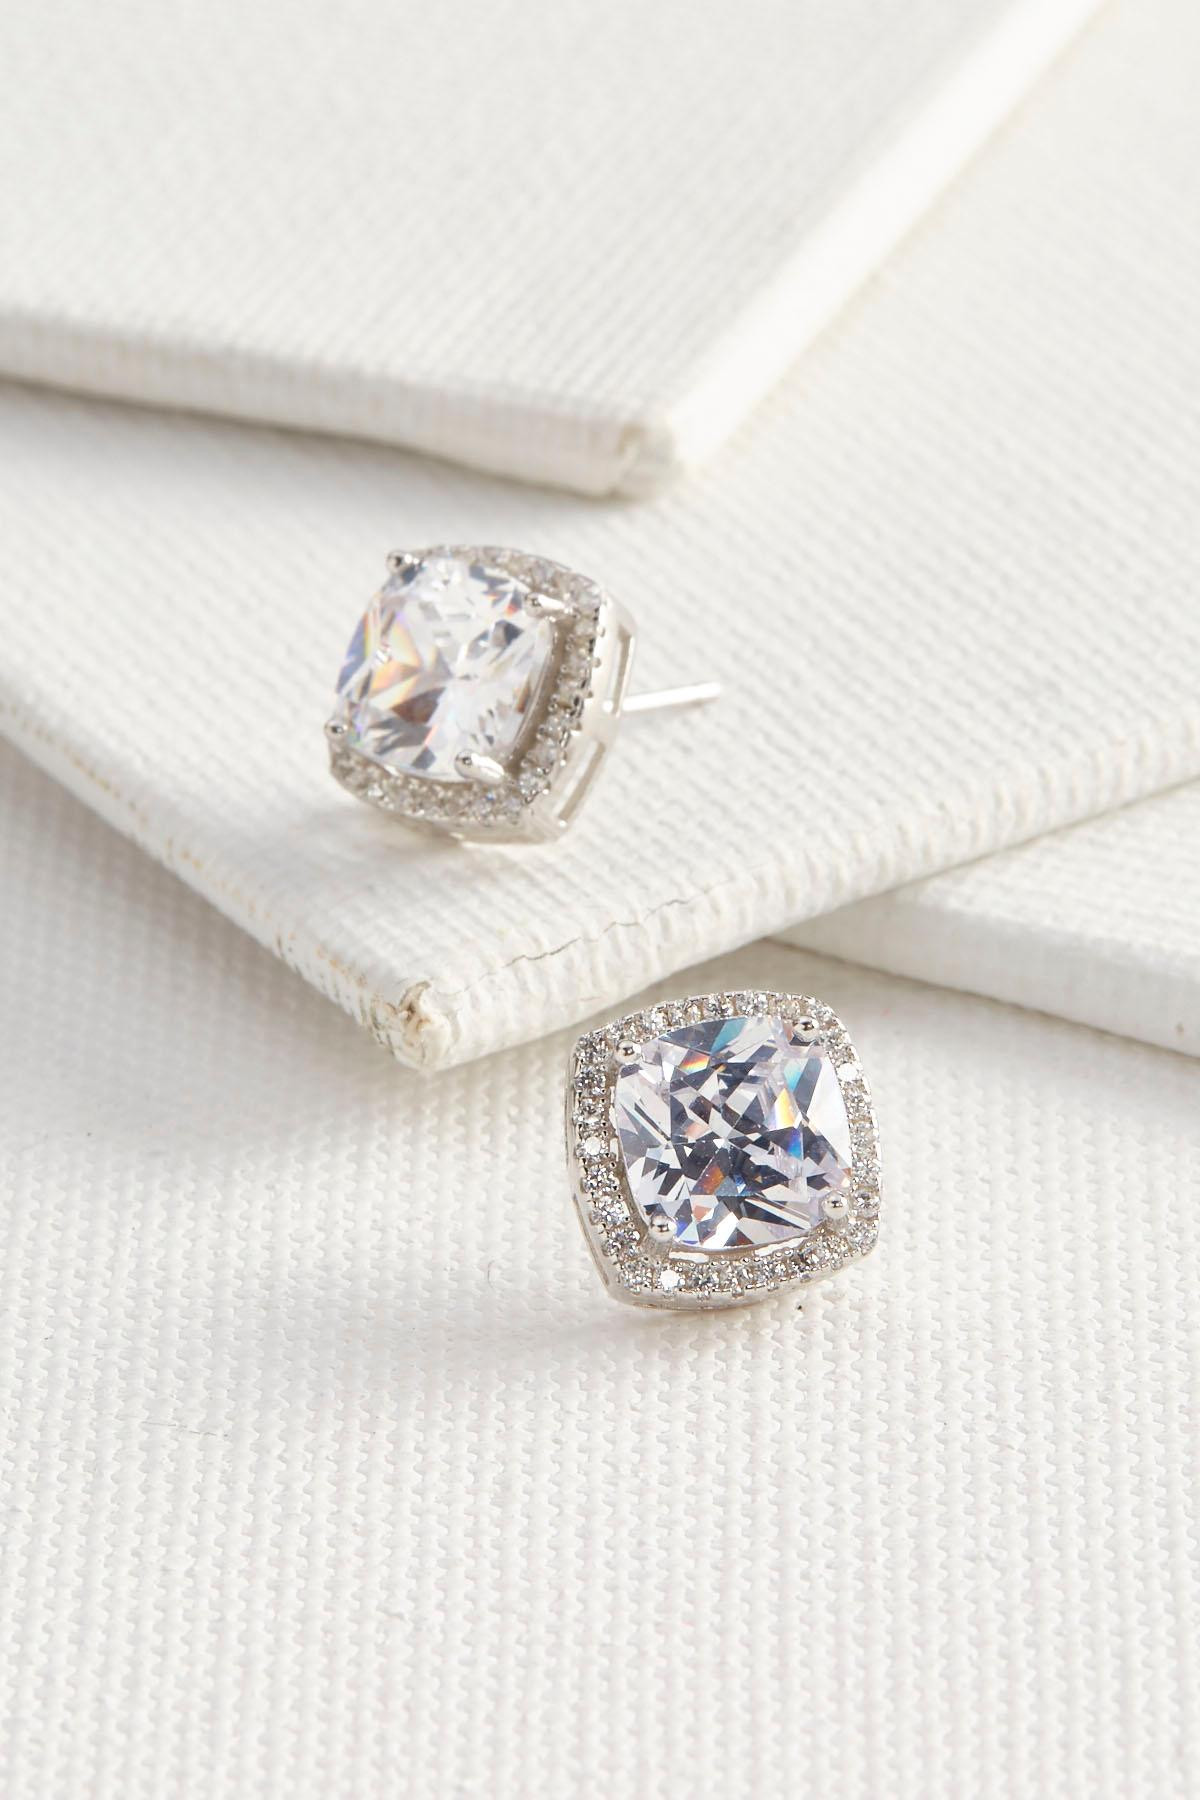 Cz Pave Stud Earrings